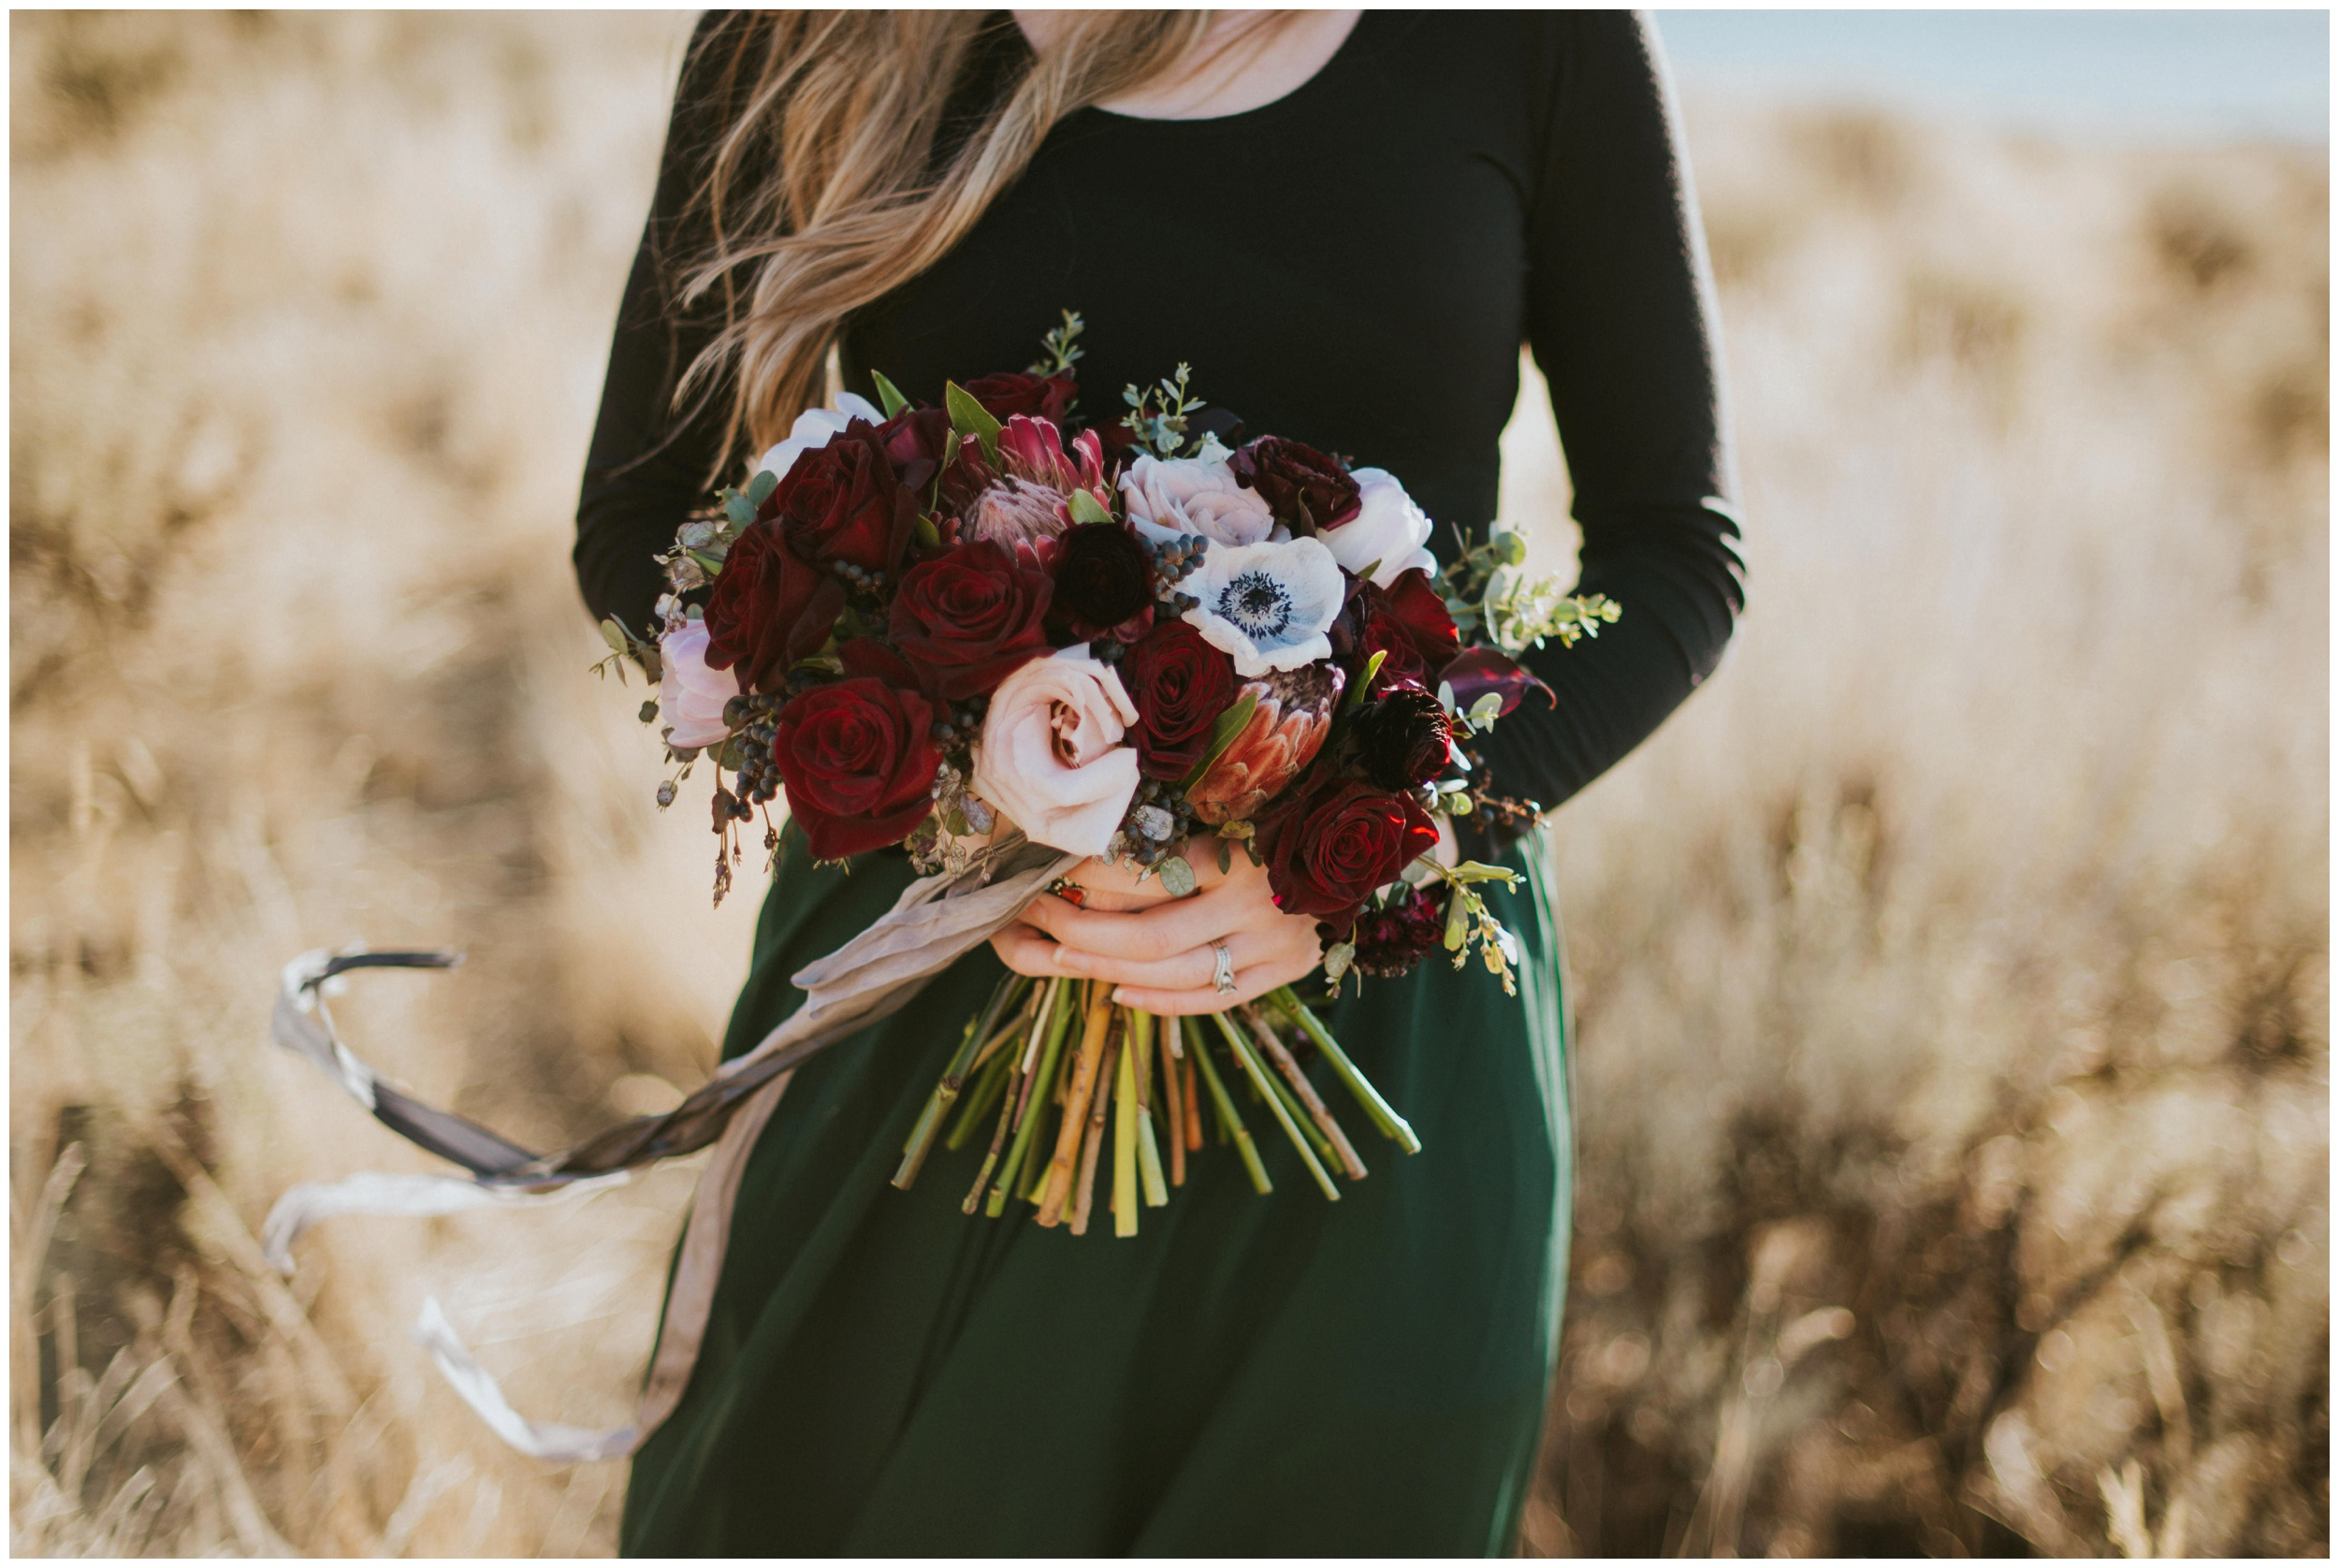 Bride holding bouquet with red roses, blush roses, grey ribbon, and emerald green skirt  | Wedding Photographer Bear Lake Utah www.riversandroadsphotography.com